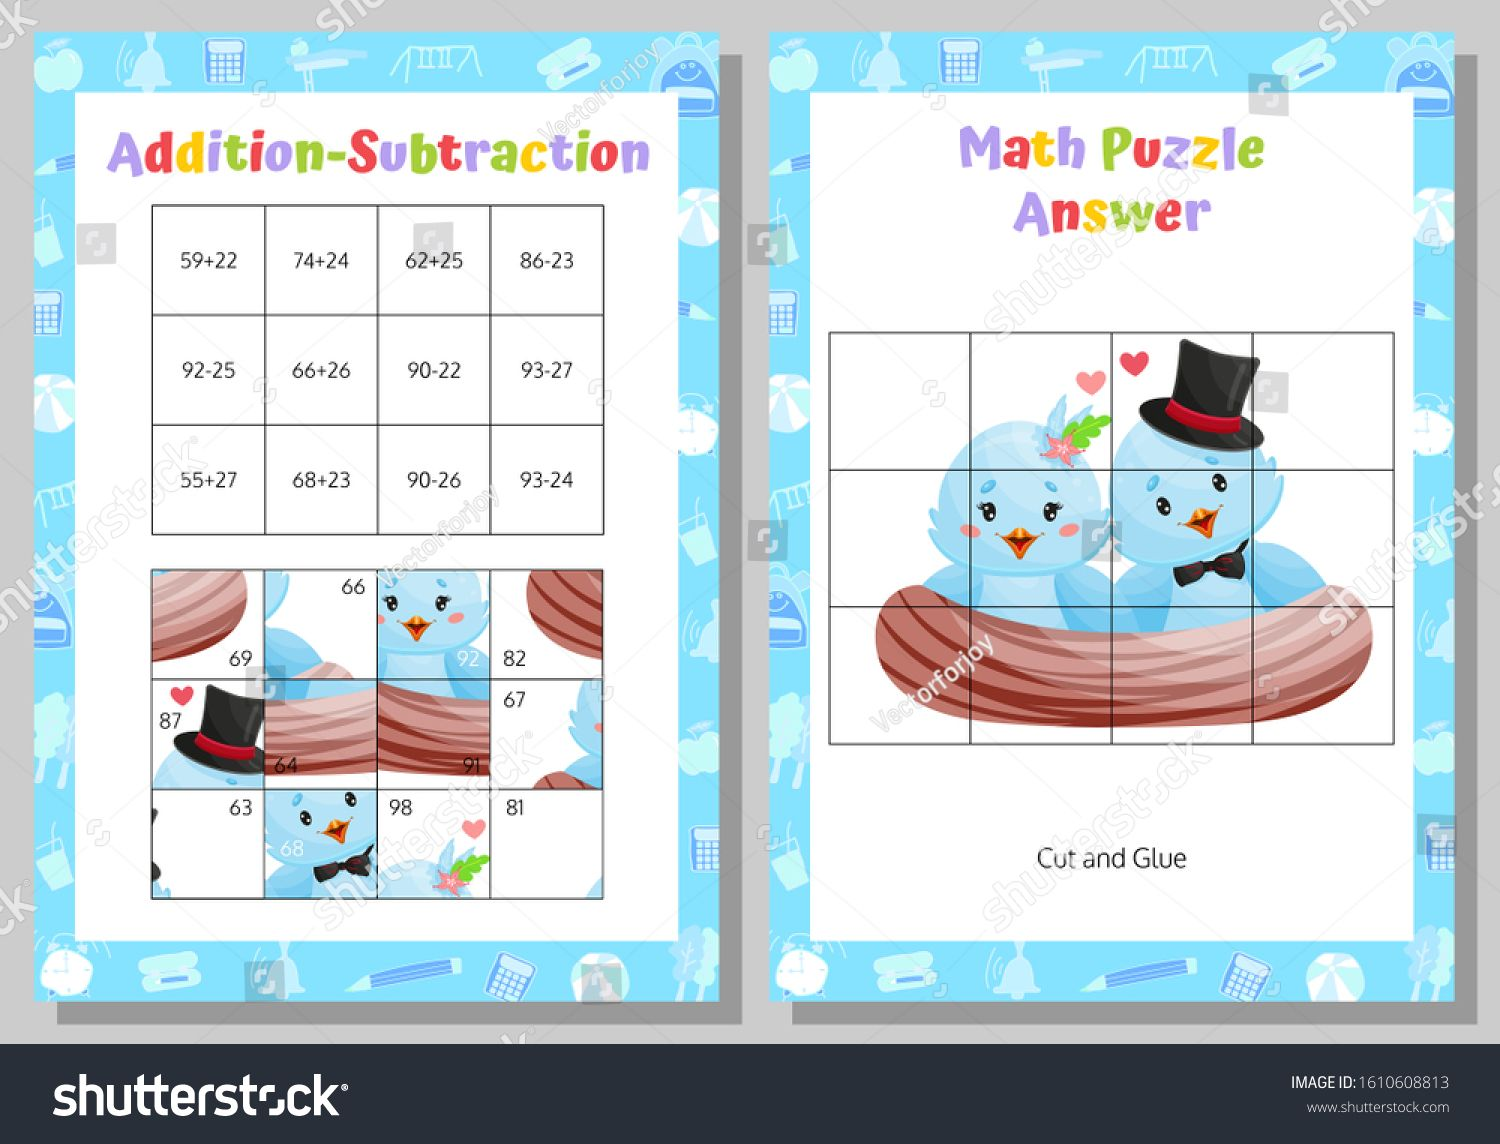 Addition Subtraction Math Puzzle Worksheet Educational Game Mathematical Game Vector Illustration Ad Maths Puzzles Addition And Subtraction Subtraction Math addition puzzle worksheets